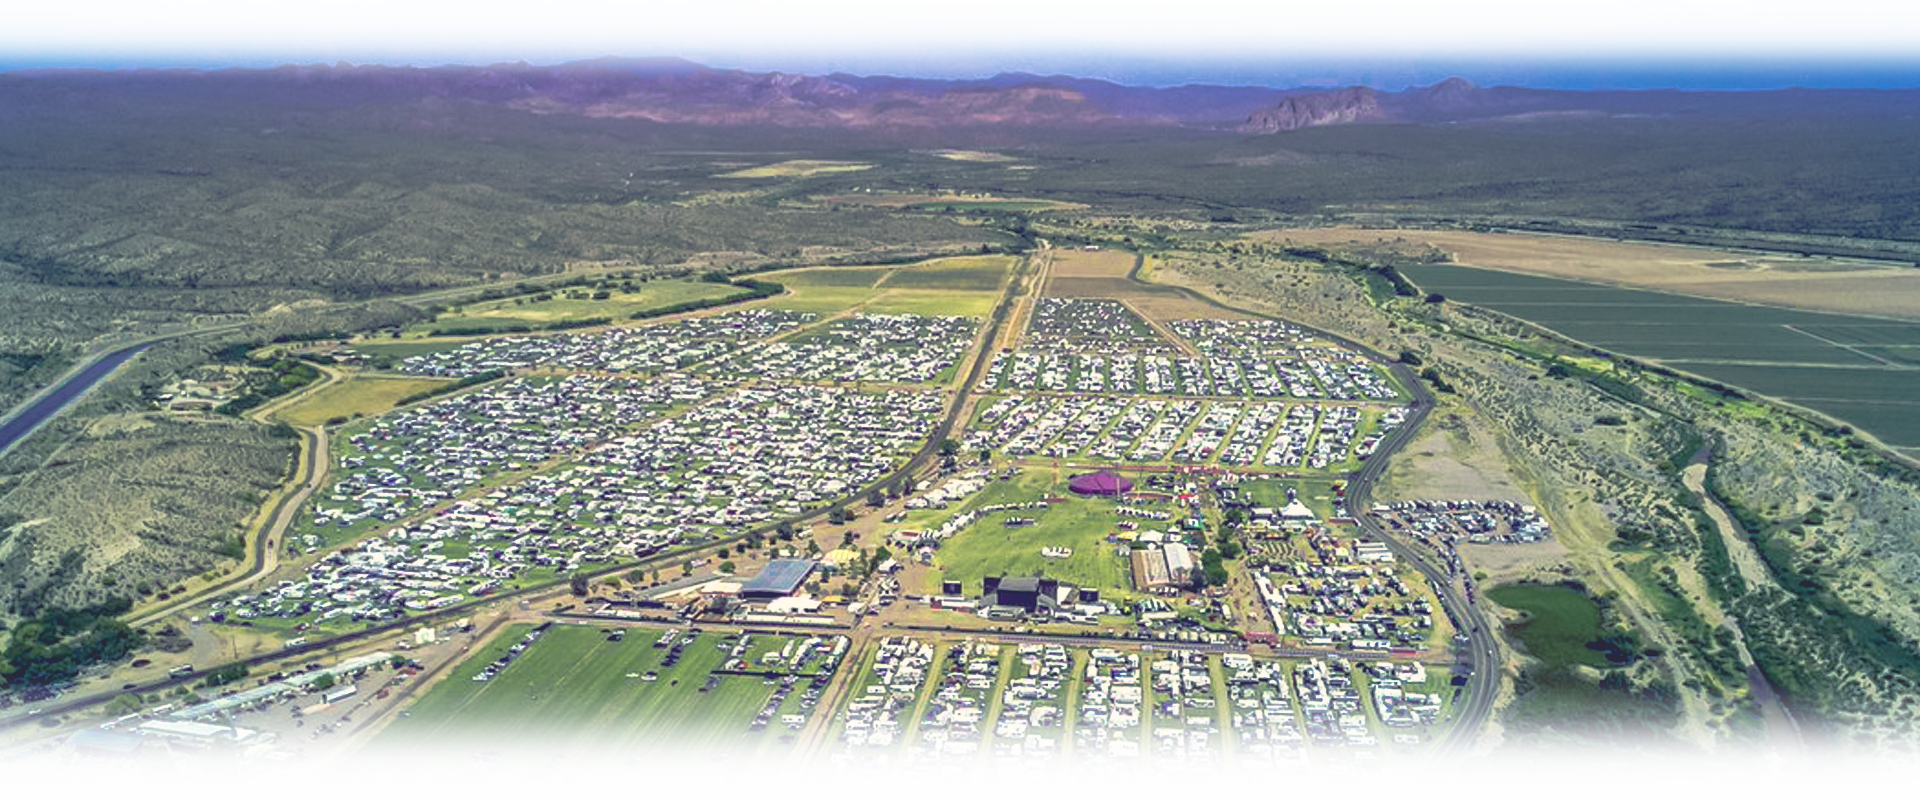 aerial view of Country Thunder Arizona